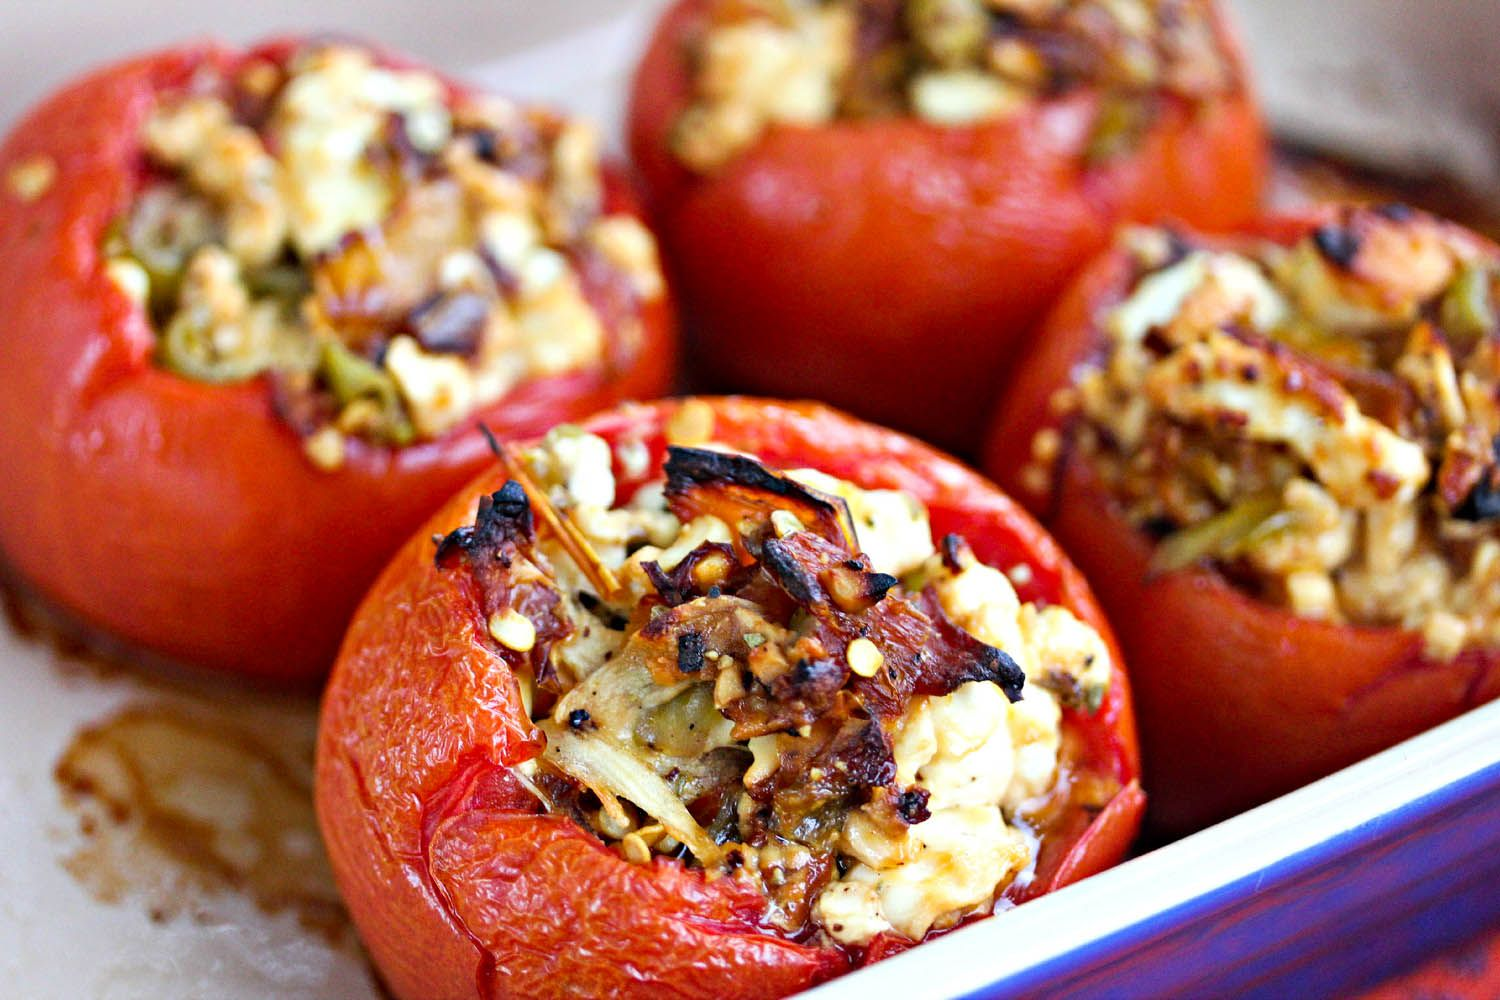 Tomato Bounty Week Feta And Roasted Red Pepper Stuffed Tomatoes Roasted Pepper Recipes Stuffed Peppers Peppers Recipes